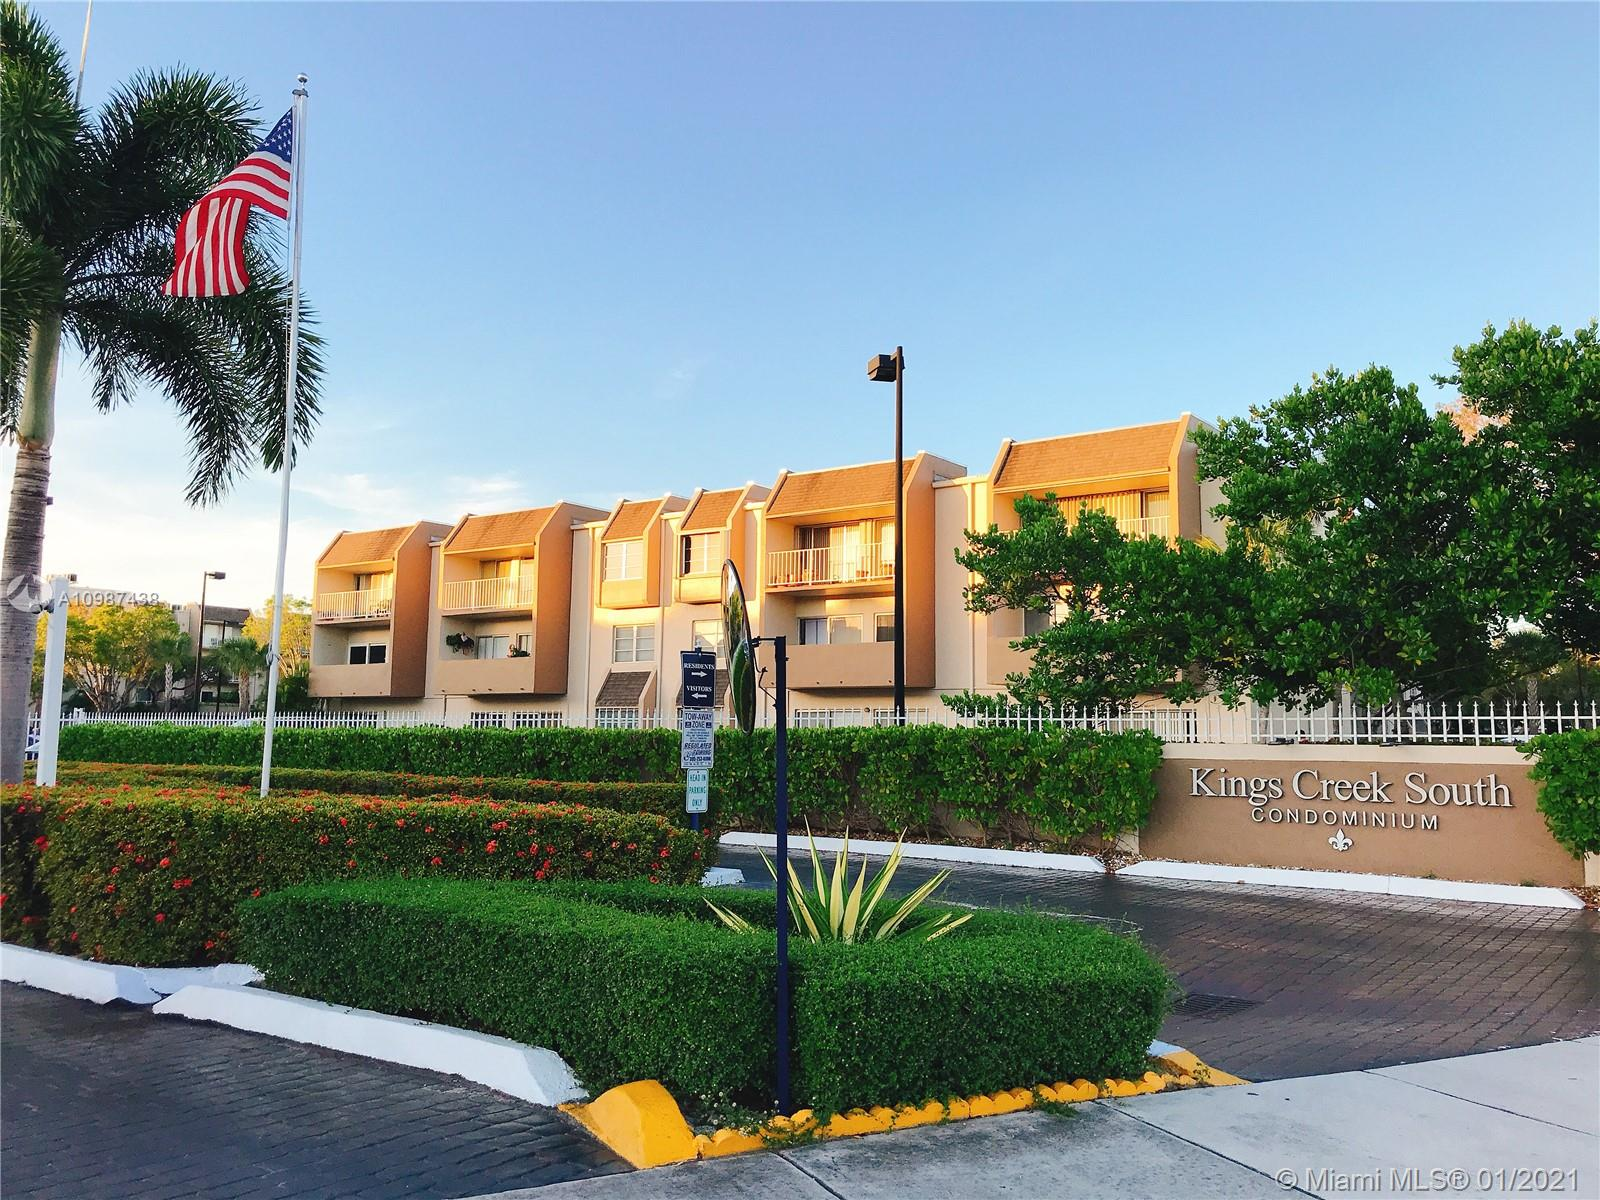 Walk in to this beautiful Condo completely remodeled with porcelain flooring throughout with living area & balcony overlooking canal. It comes with 1 bedroom 1 bath, Kitchen has bran new wood cabinets and quartz countertops. New electric & plumbing throughout the apartment & Hurricane shutters. There are 2 parking spots available with decal. The building features a gym, weight room, tennis courts, clubhouse, party room, BBQ grills, jacuzzi, 2 swimming pools, common storage & 24hr security. Maintenance fee covers all amenities plus cable, security, exterior building insurance, and water/sewer. Just a short walk from Dadeland Mall & downtown Dadeland. FHA approved :).